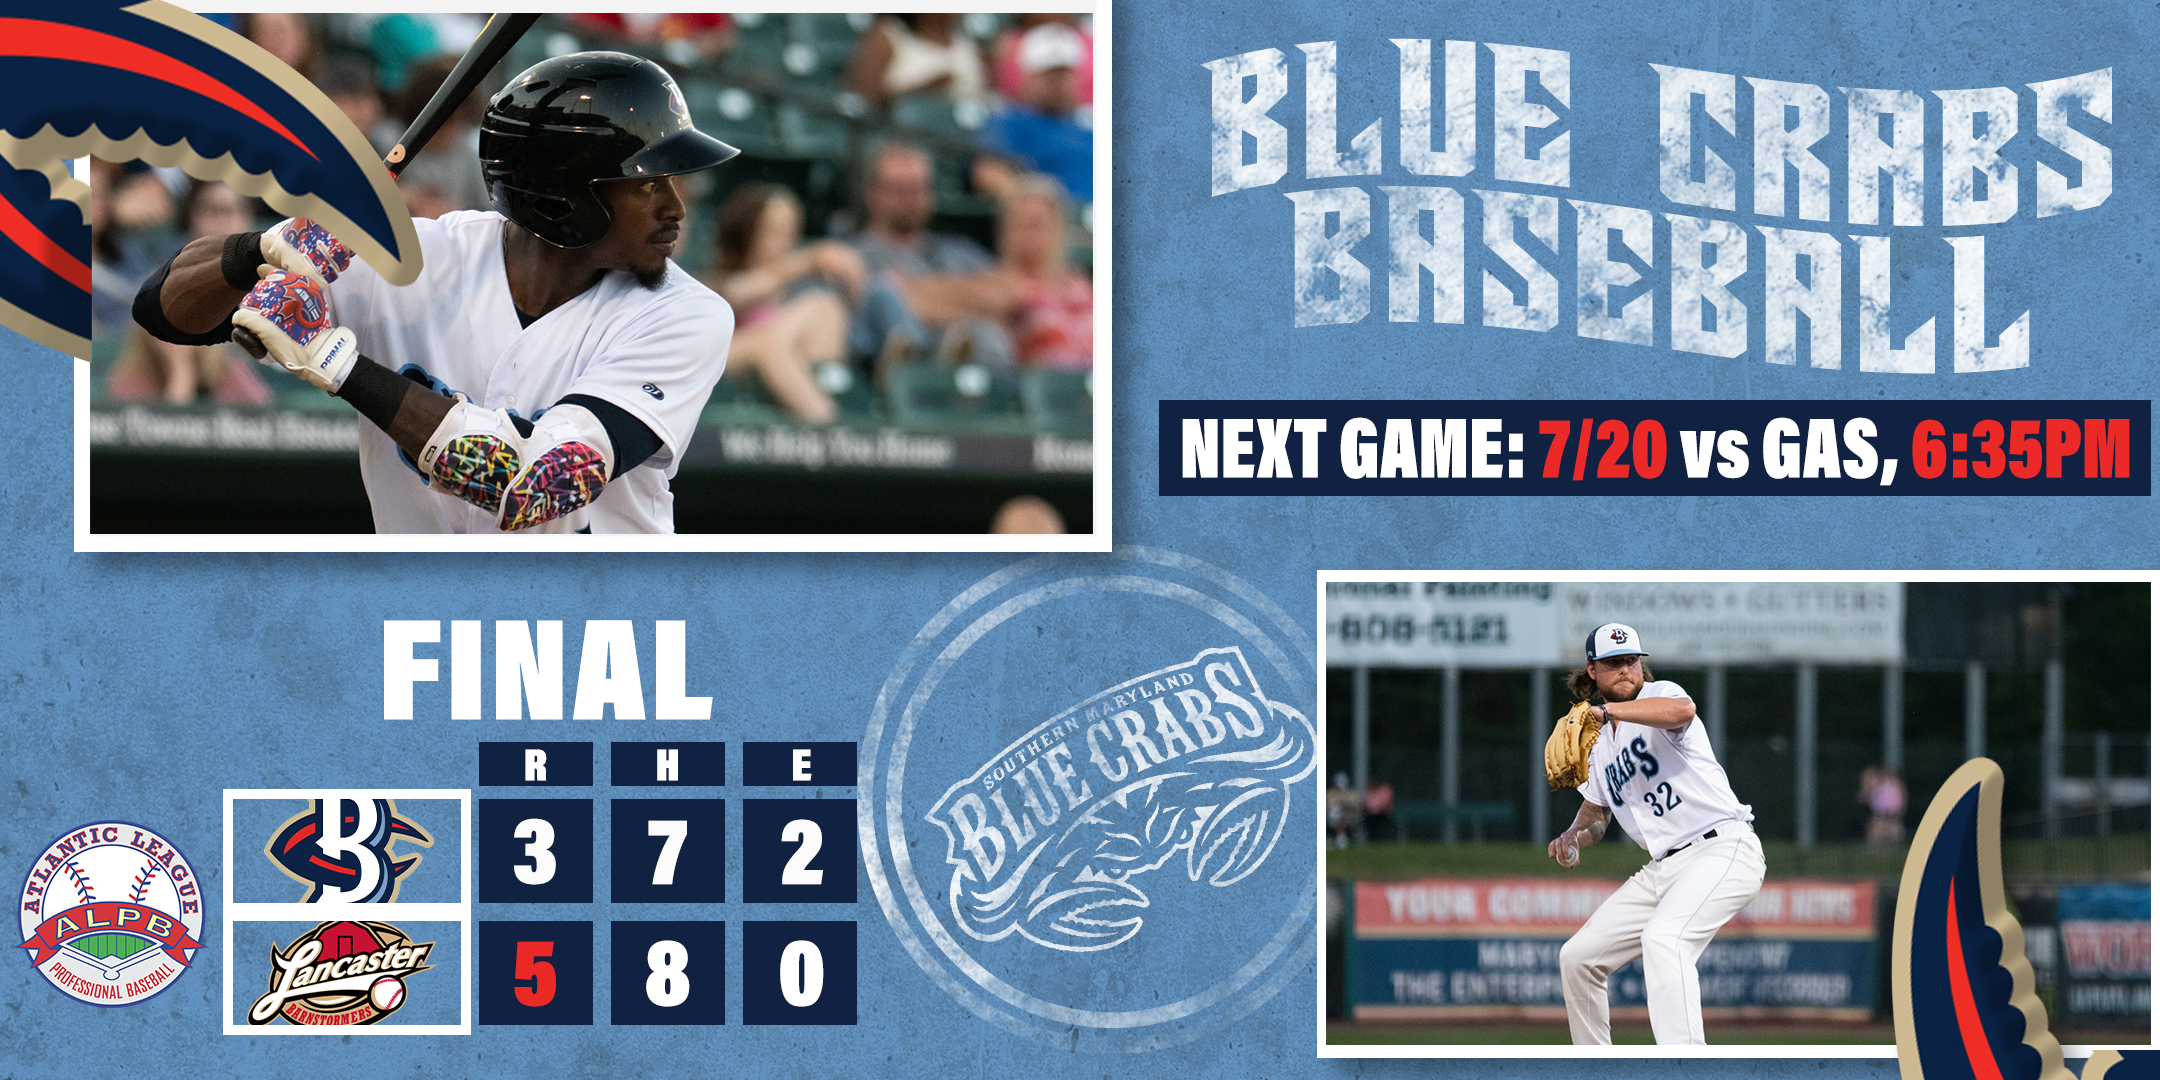 Blue Crabs Fall in Series Finale, Final Game of Road Trip